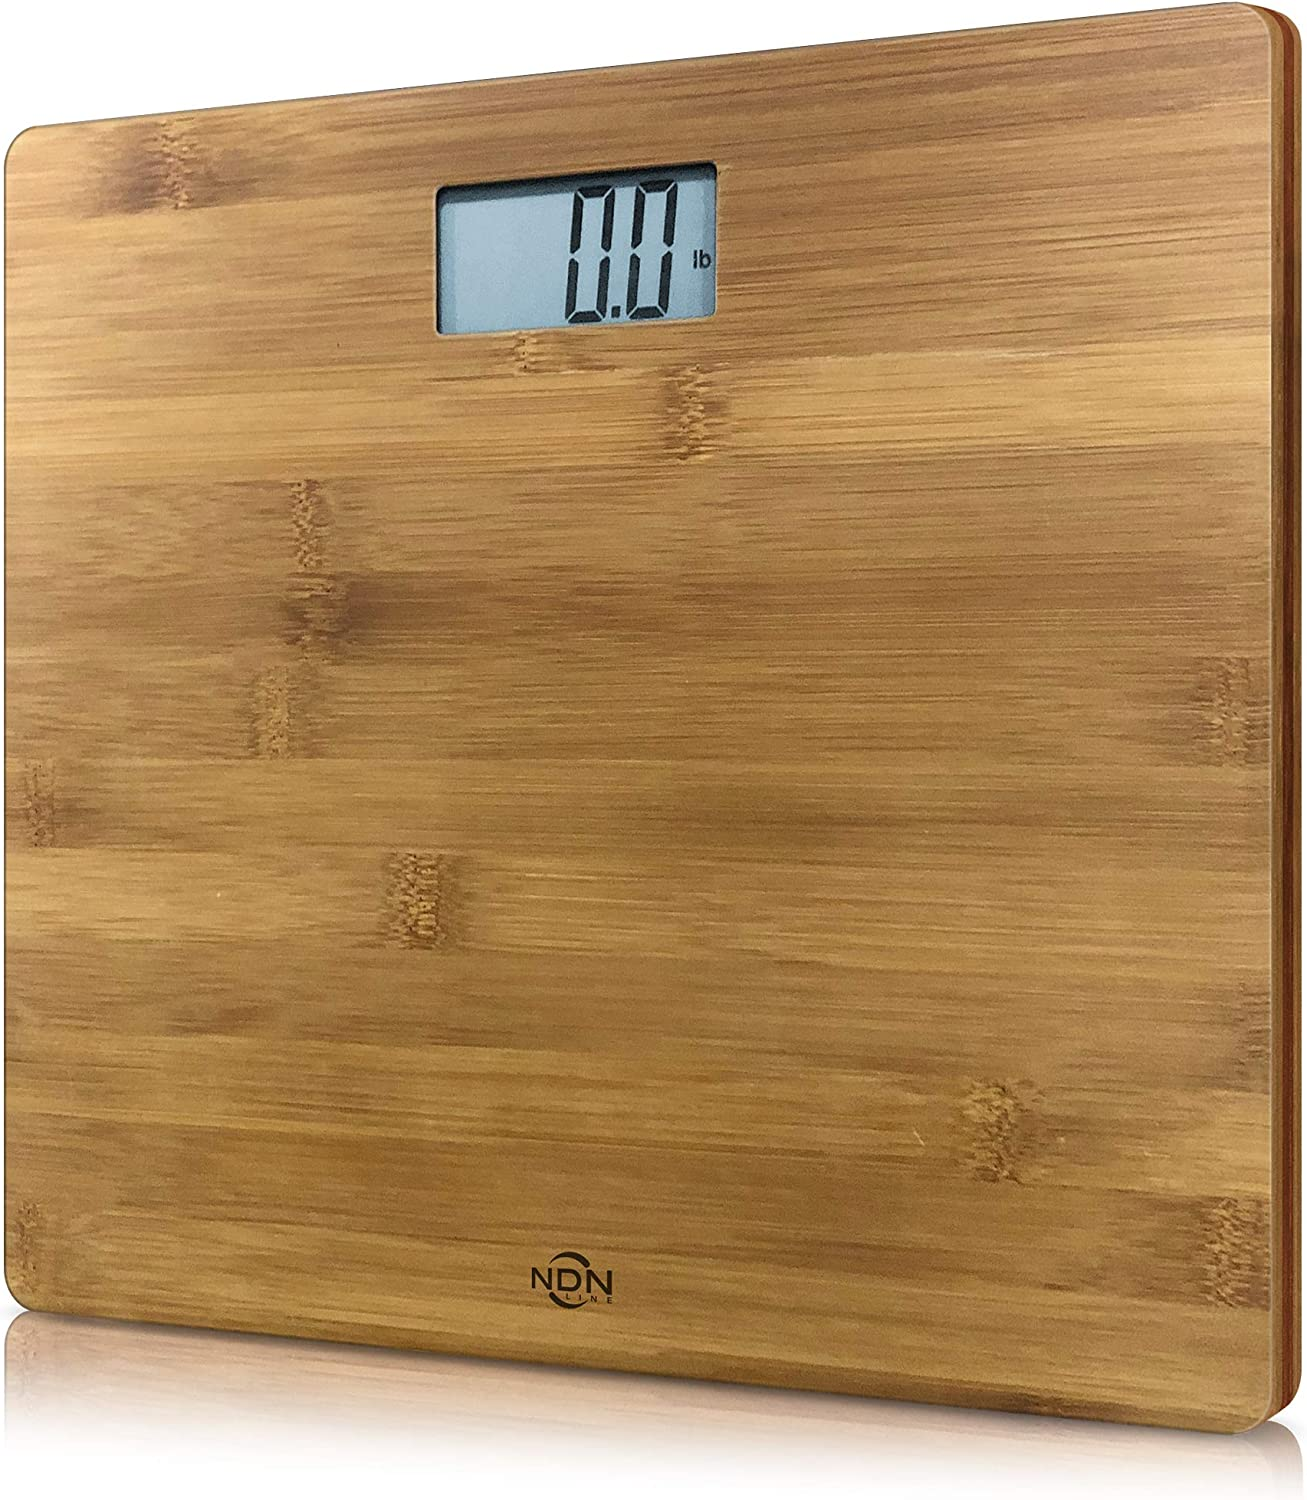 NDN LINE Bamboo Digital Body Weight Bathroom Scale | Feel the Natural Wood Difference